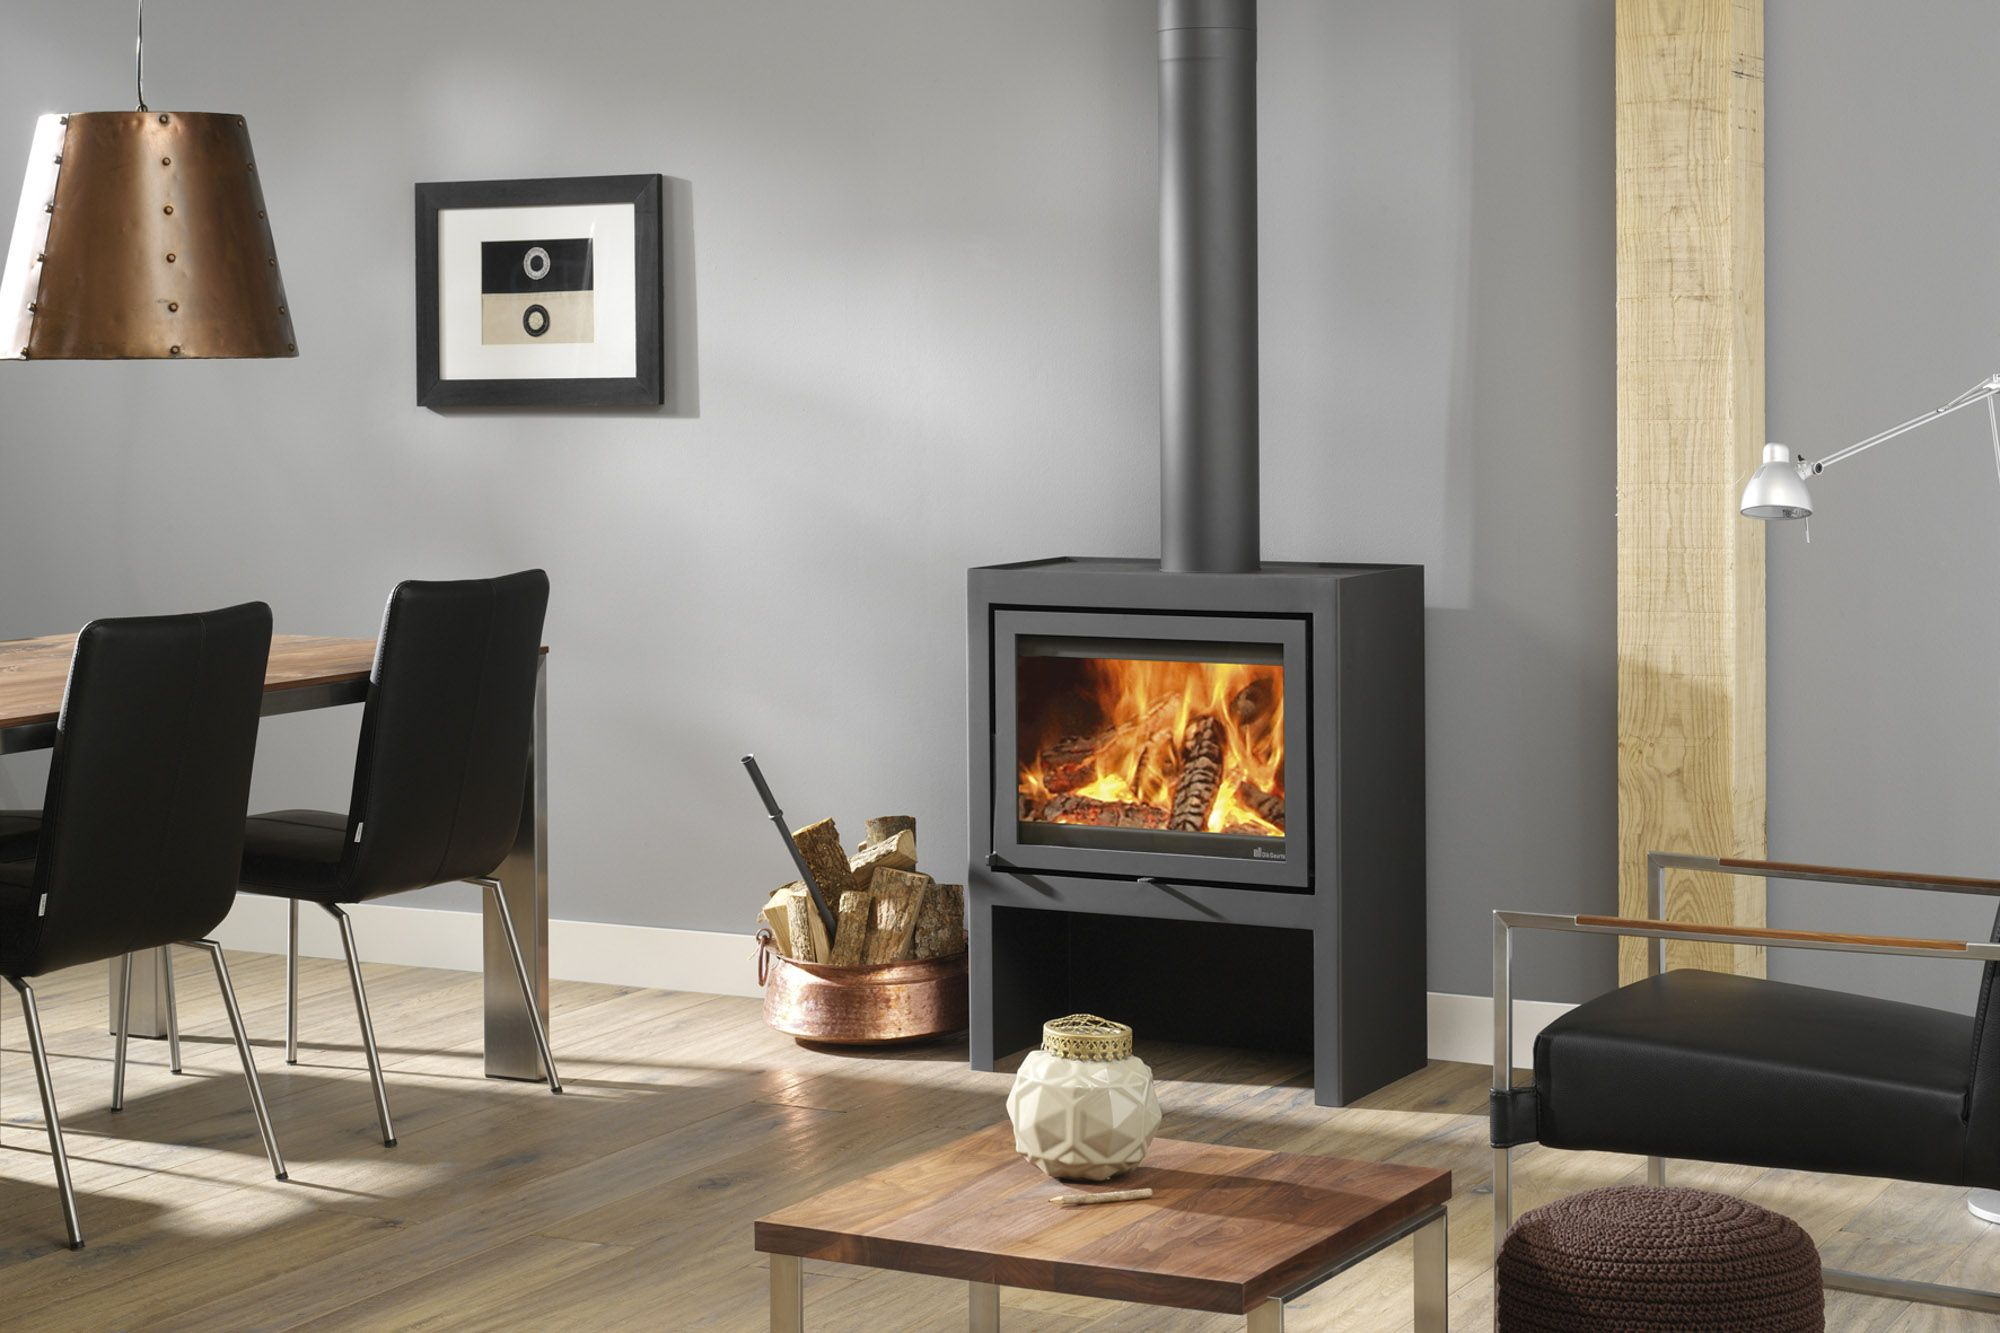 With panoramic view to the fire J¸tul F 520 offers the experience